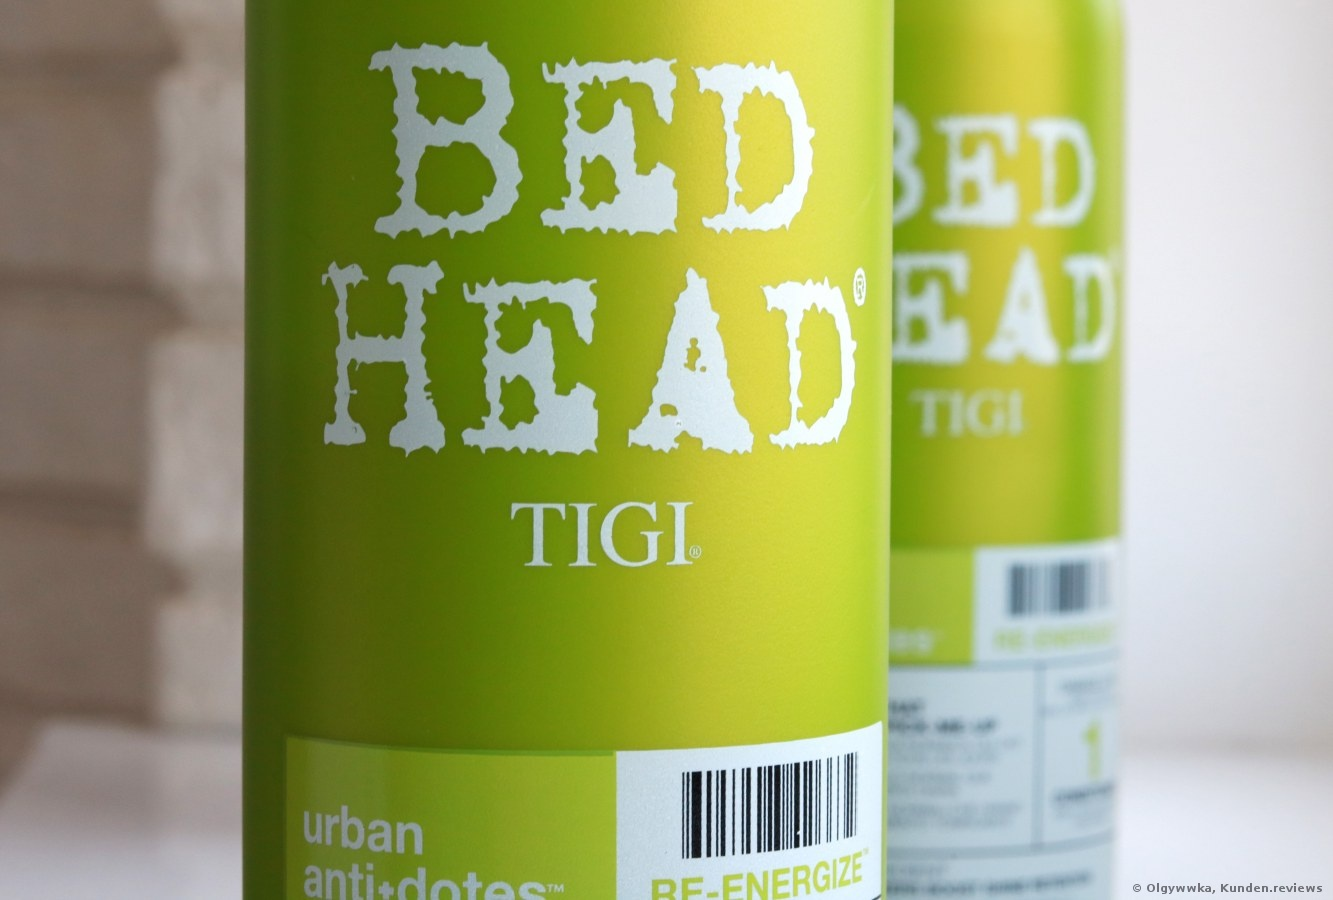 TIGI Bed Head Urban Antidotes Re-Energize Shampoo Review